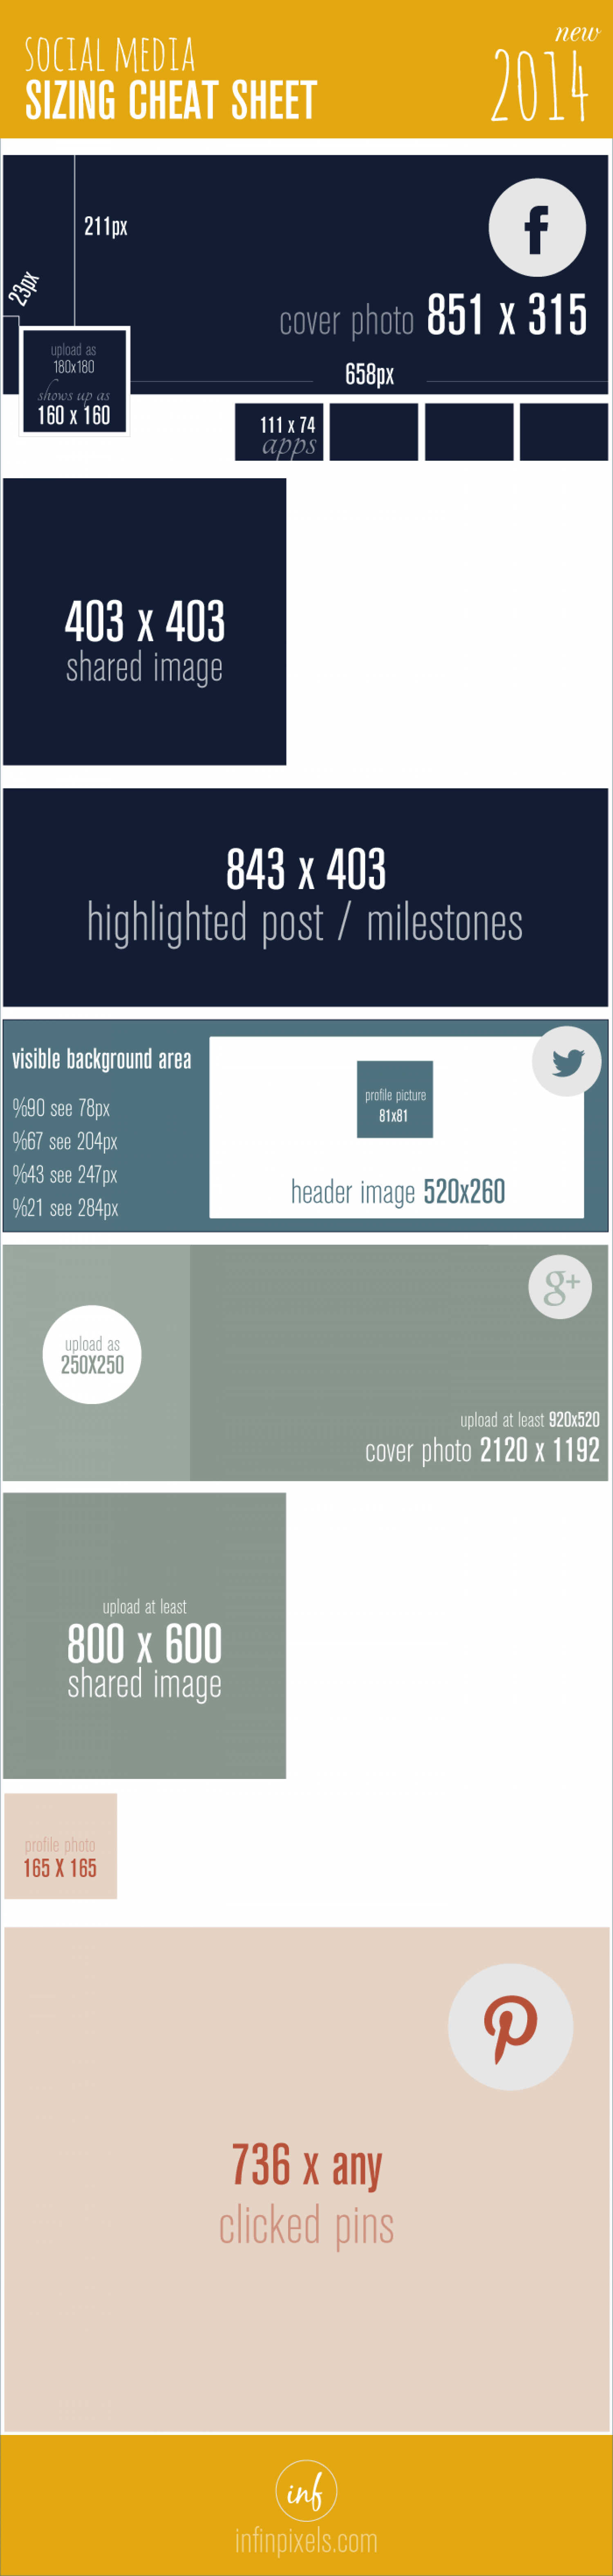 Social Media Sizing Cheat Sheet - 2014 Infographic